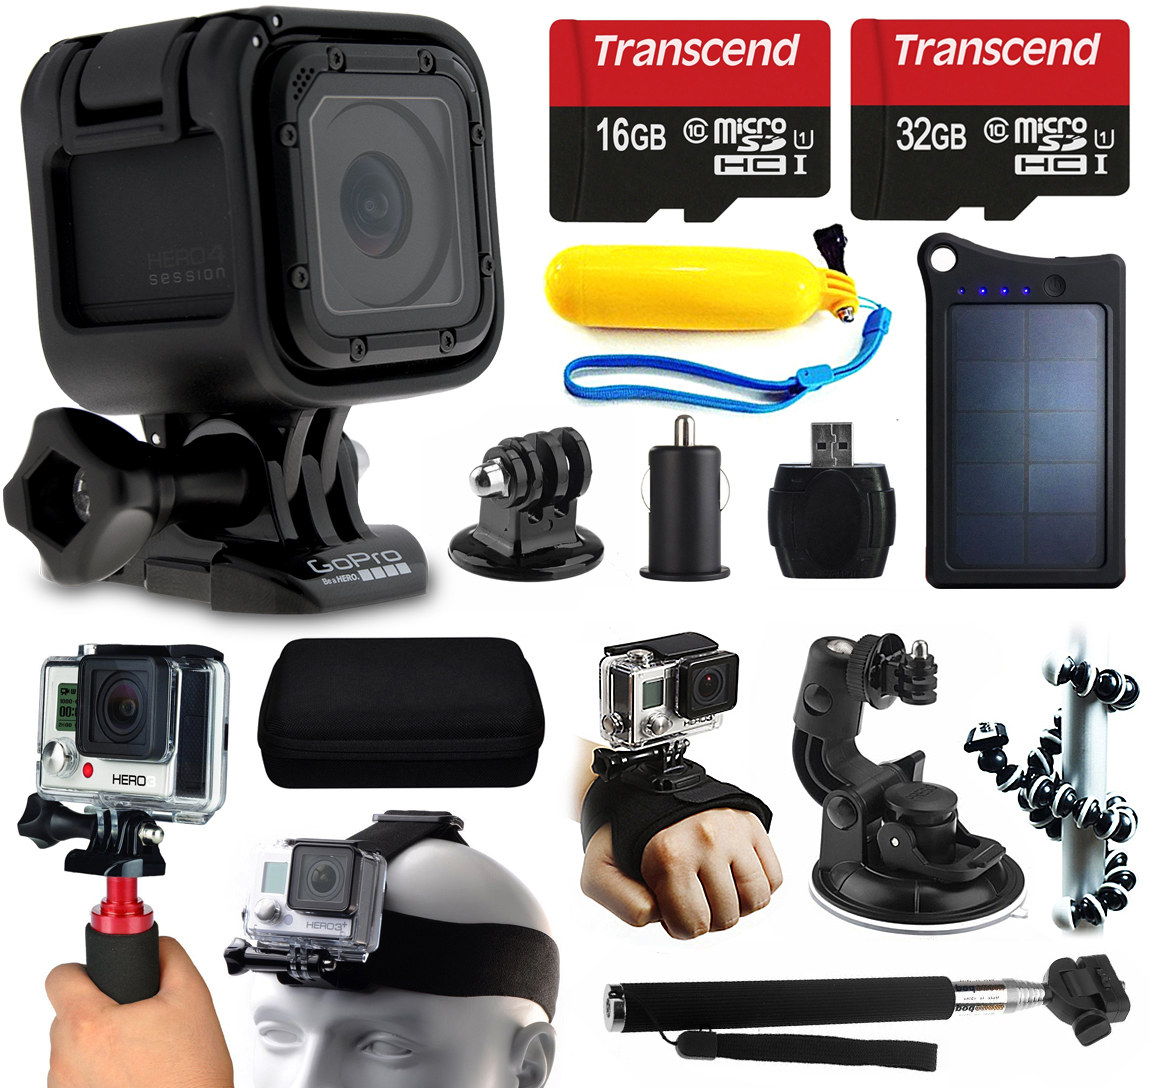 GoPro HERO4 Session HD Action Camera (CHDHS-101) + 48GB Essetial Accessories Bundle includes Solar Charger + Stabilizer + Head Strap + Car Mount + Selfie Stick + Travel Case + Car Charger + More!